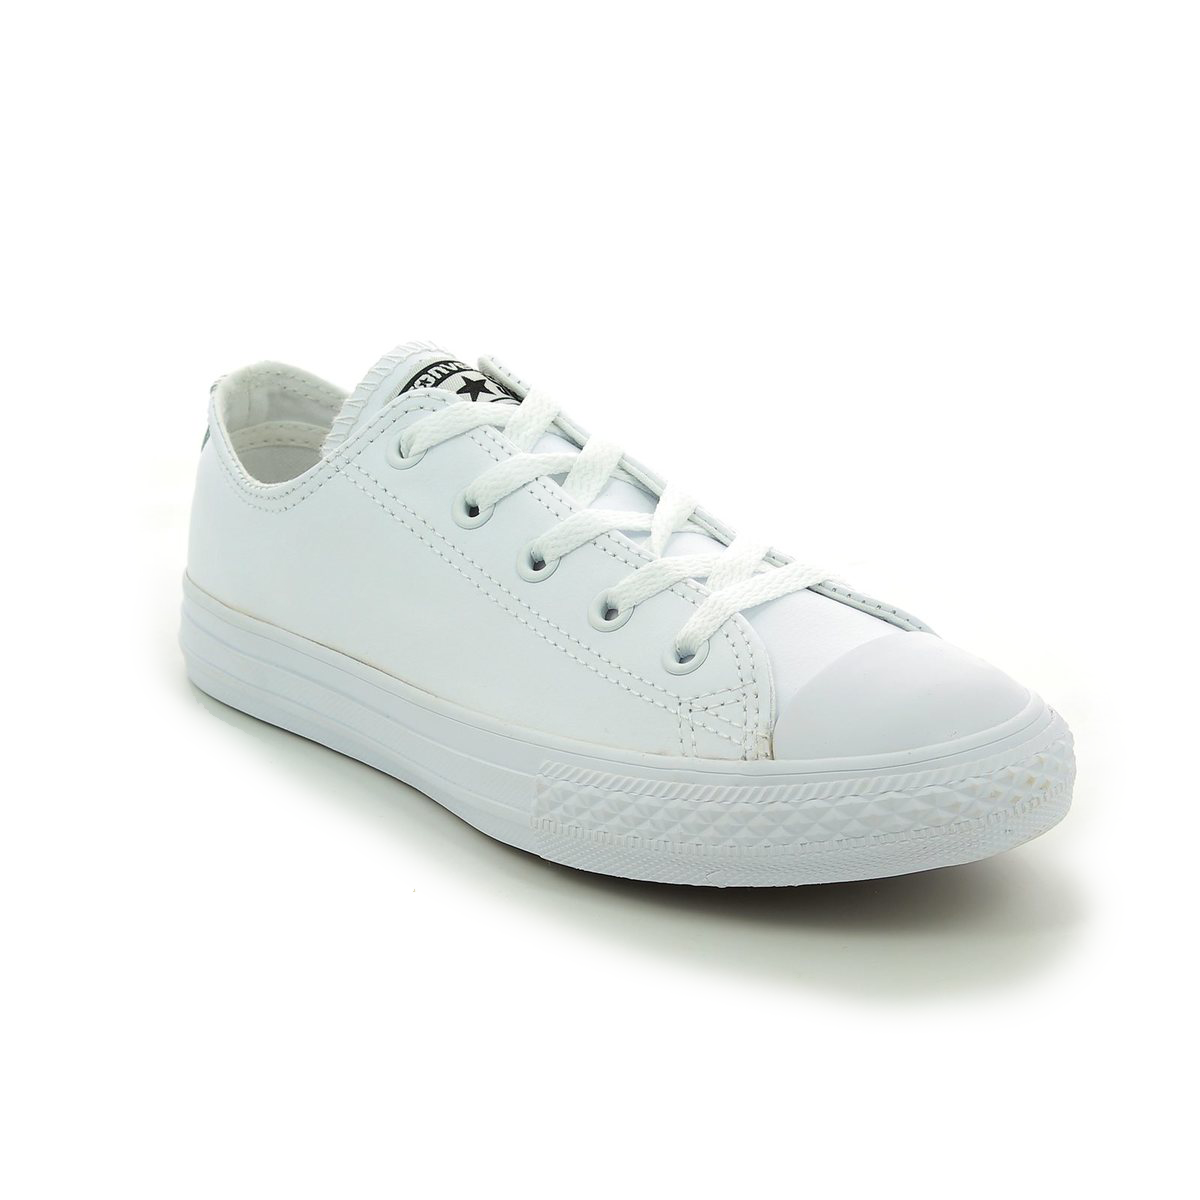 6bba14d556c Converse Trainers - White - 335891C Chuck Taylor All Star OX Mono Leather